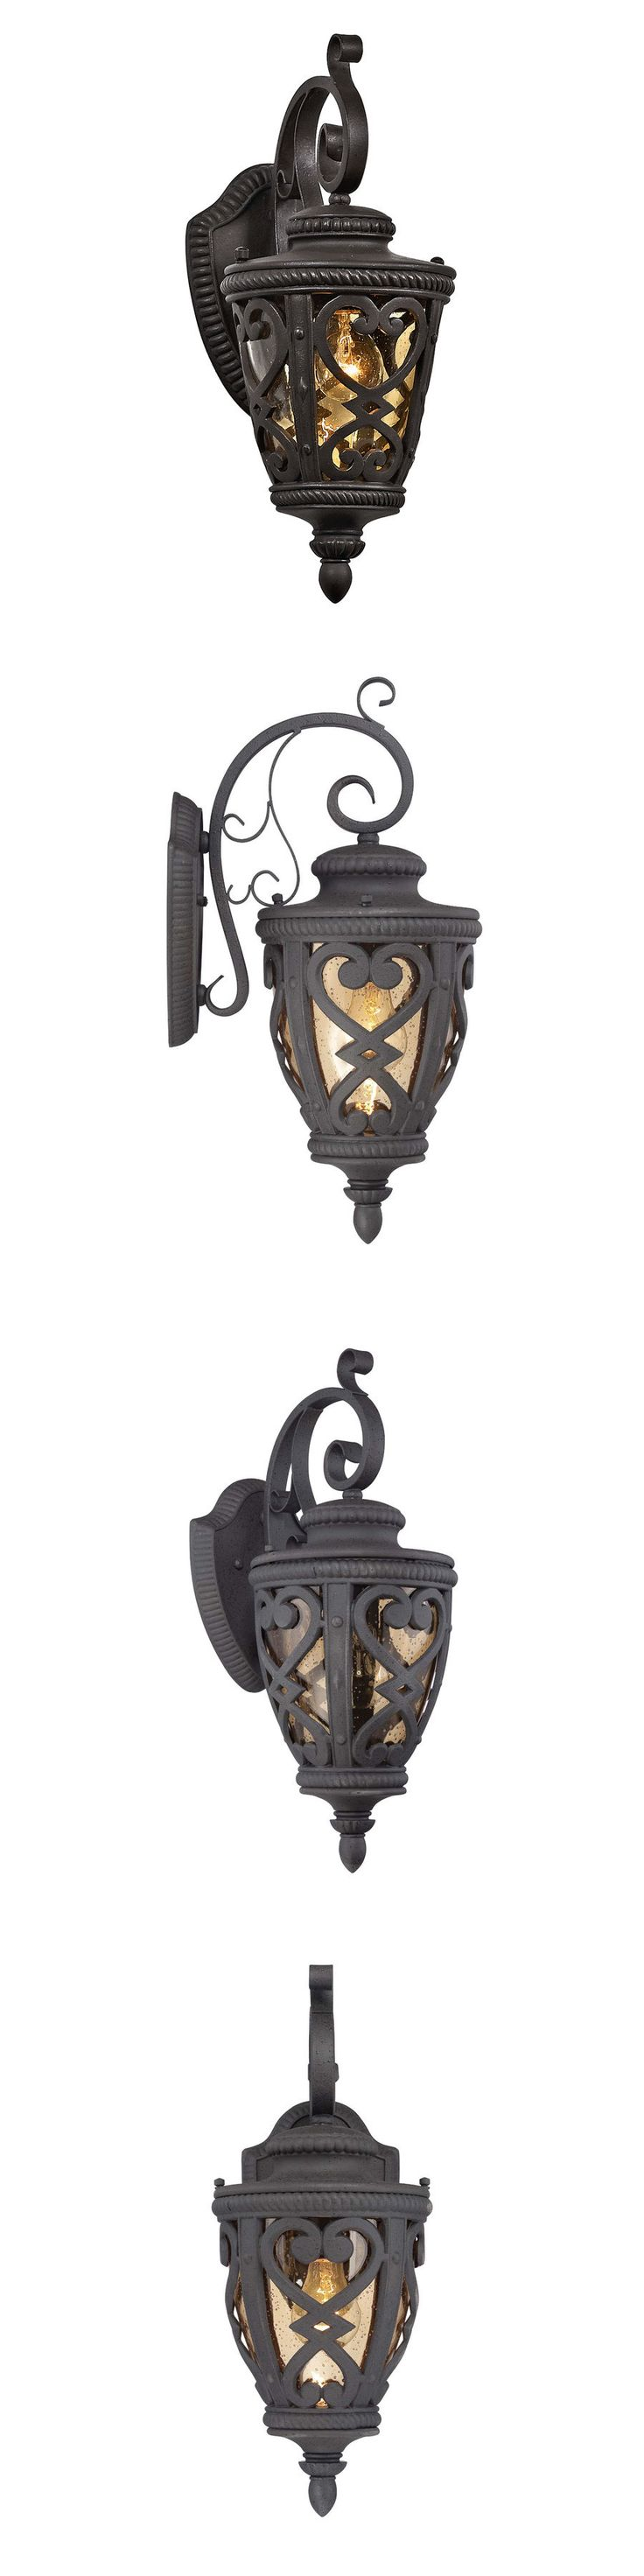 Chloe loft industrial 2 light oil rubbed bronze wall sconce free - Outdoor Wall And Porch Lights 94939 Outdoor Porch Patio Exterior Wall Lighting Sconce Light Fixture